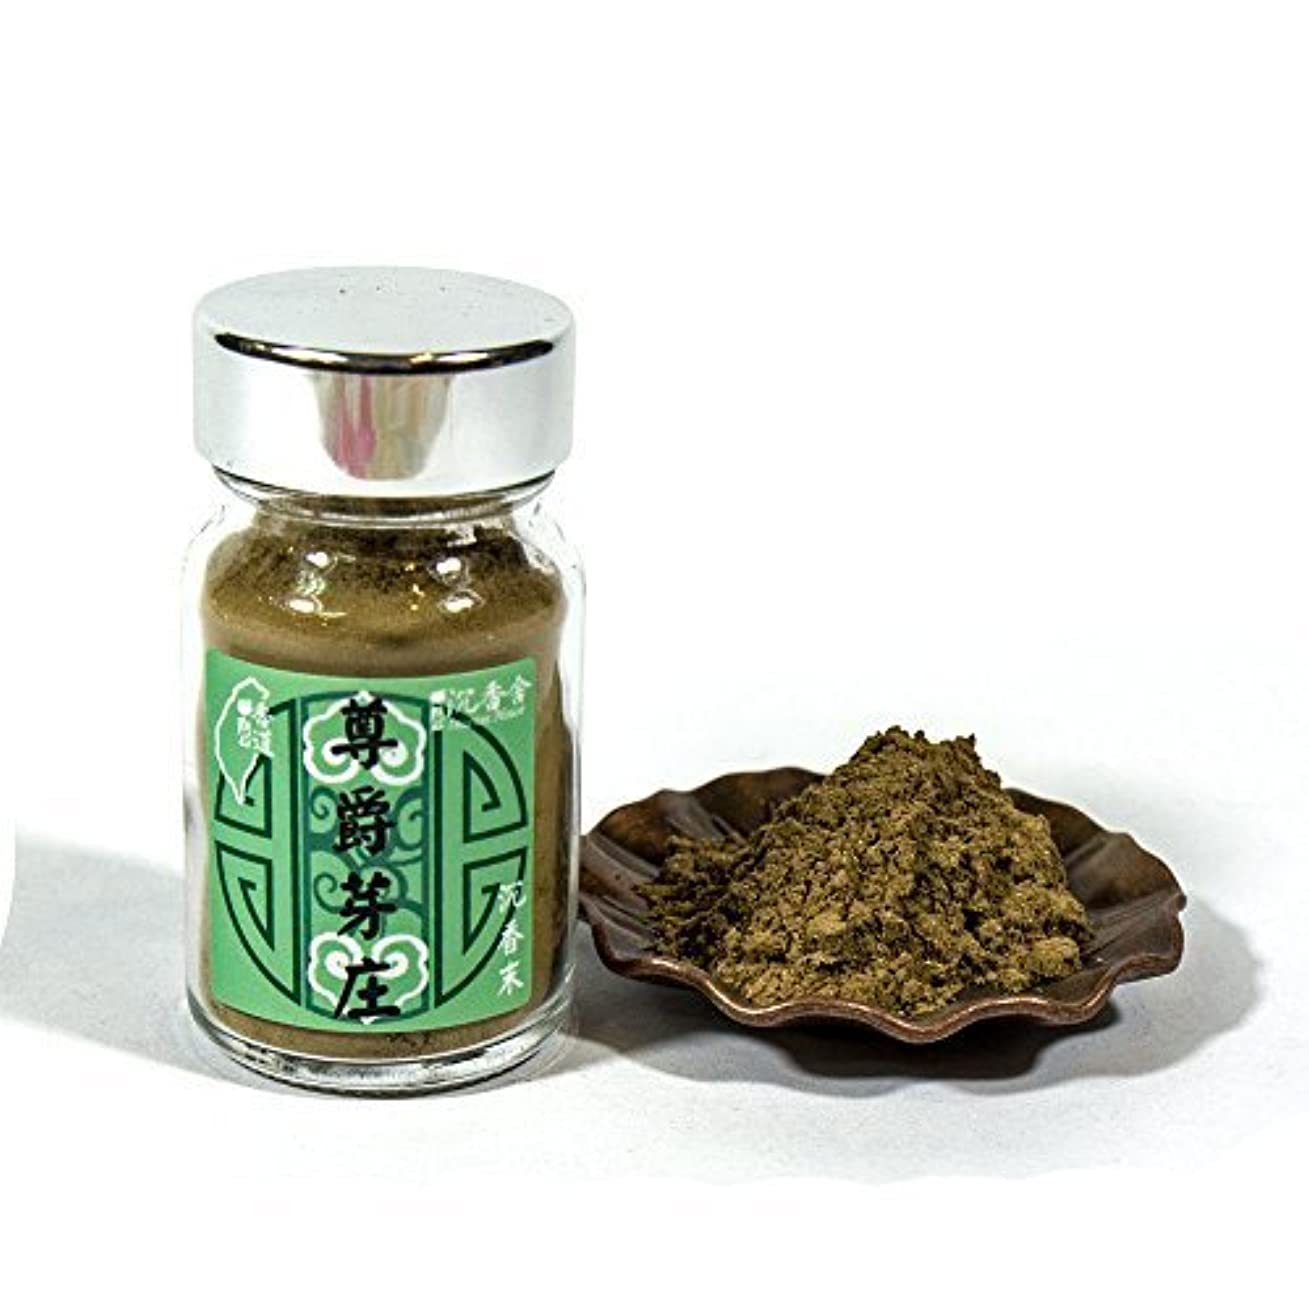 ルーフ維持下に向けますAgarwood Aloeswood Top Grade Old Stock NhaTrang Chen Xiang Incense Powder 10g by IncenseHouse - Raw Material [並行輸入品]